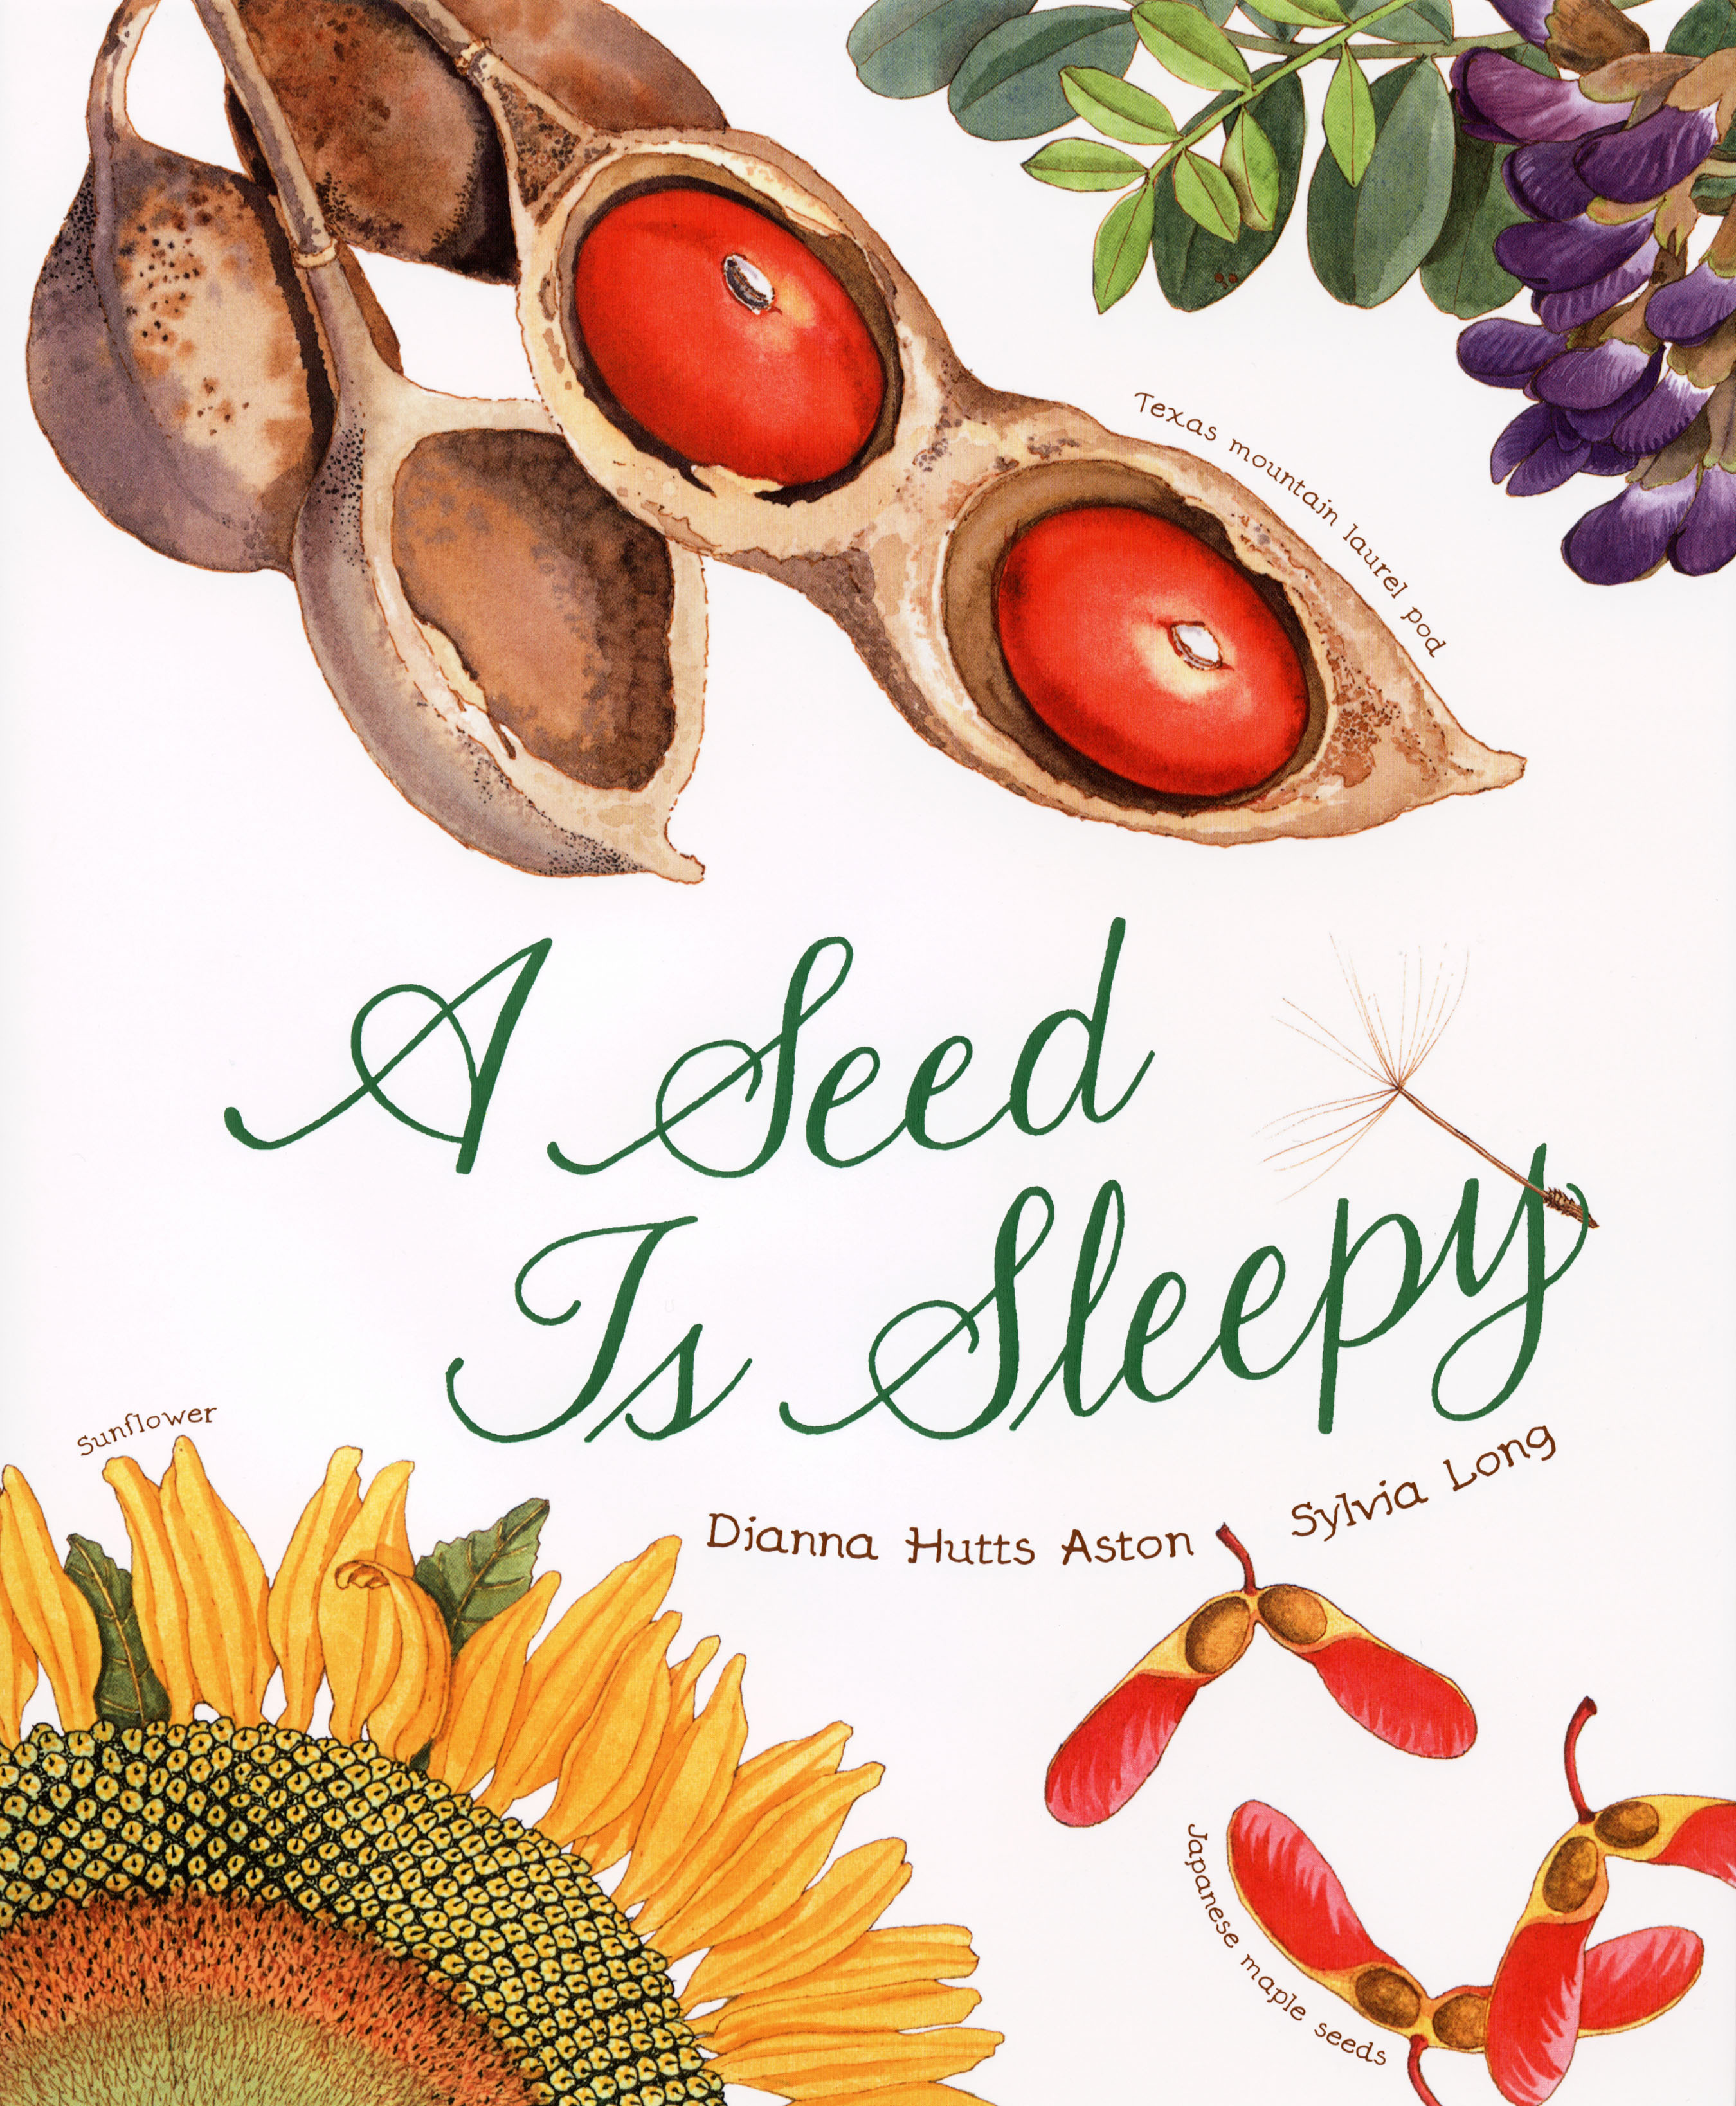 """A Seed Is Sleepy"" by Dianna Hutts Aston and Sylvia Long"